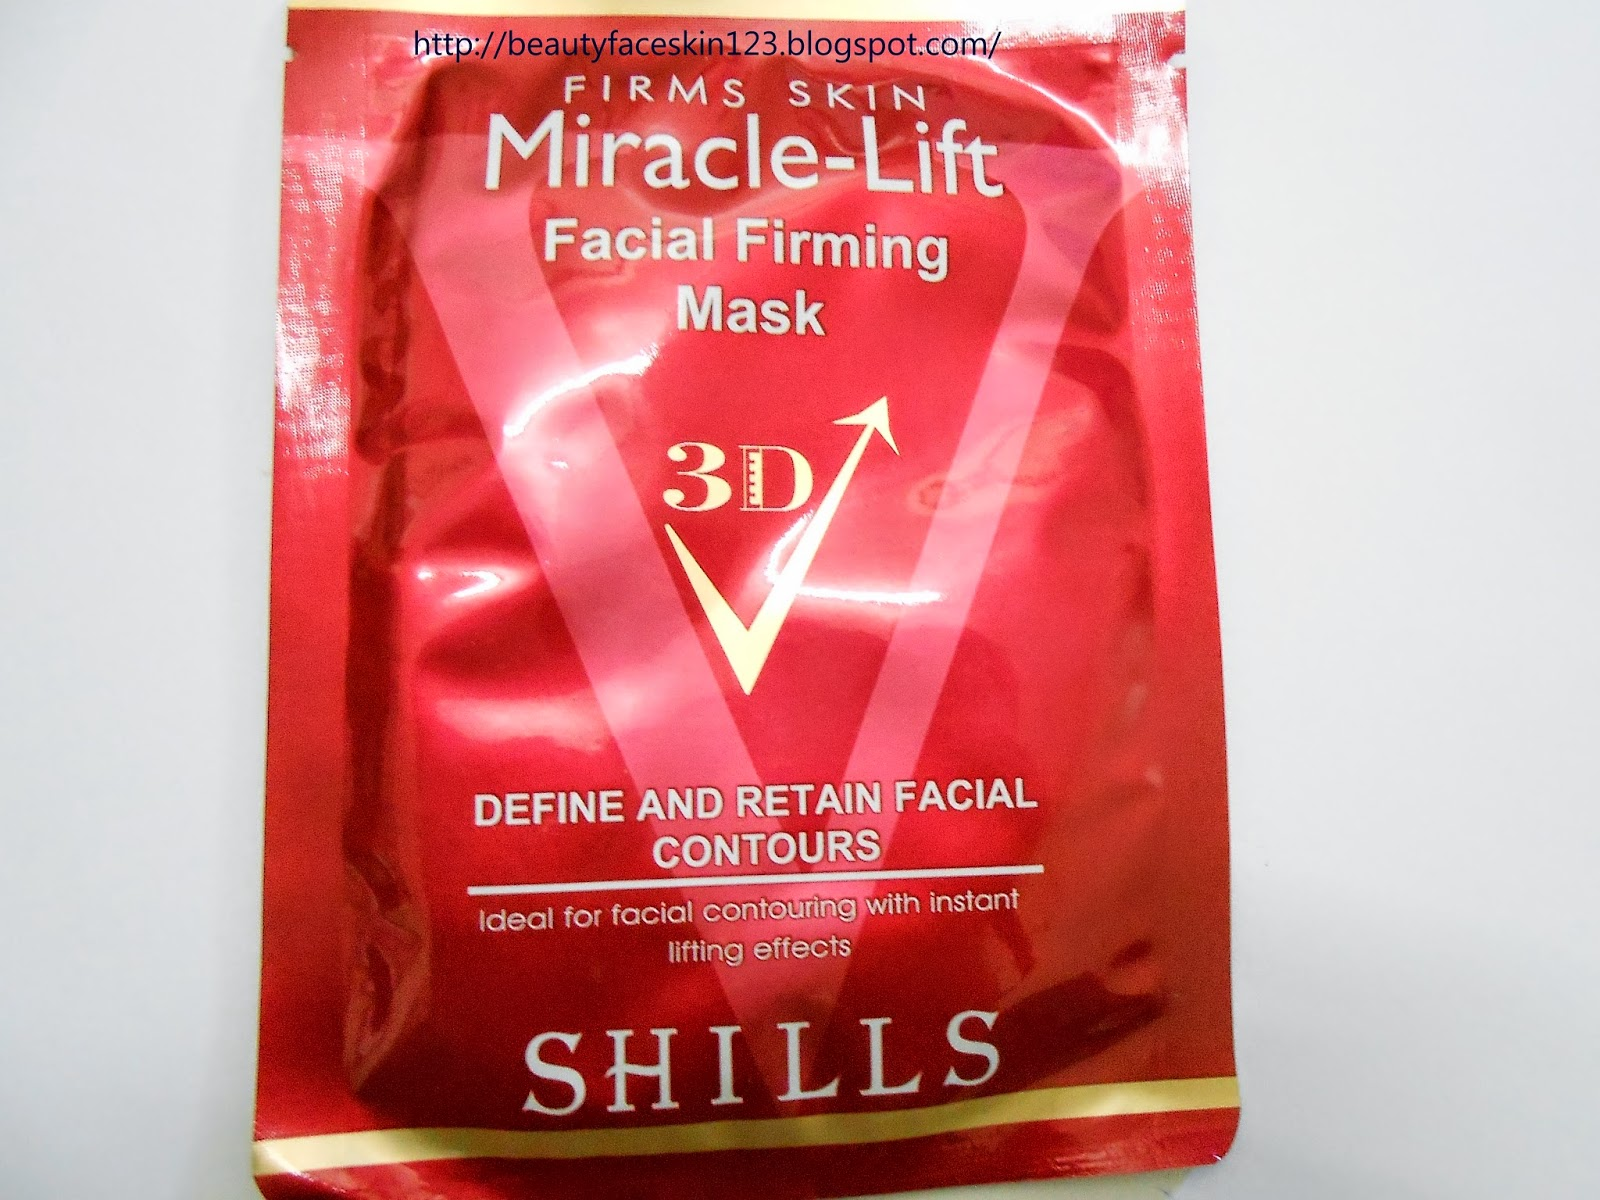 REVIEW SHILLS MIRACLE LIFT FACIAL FIRMING MASK